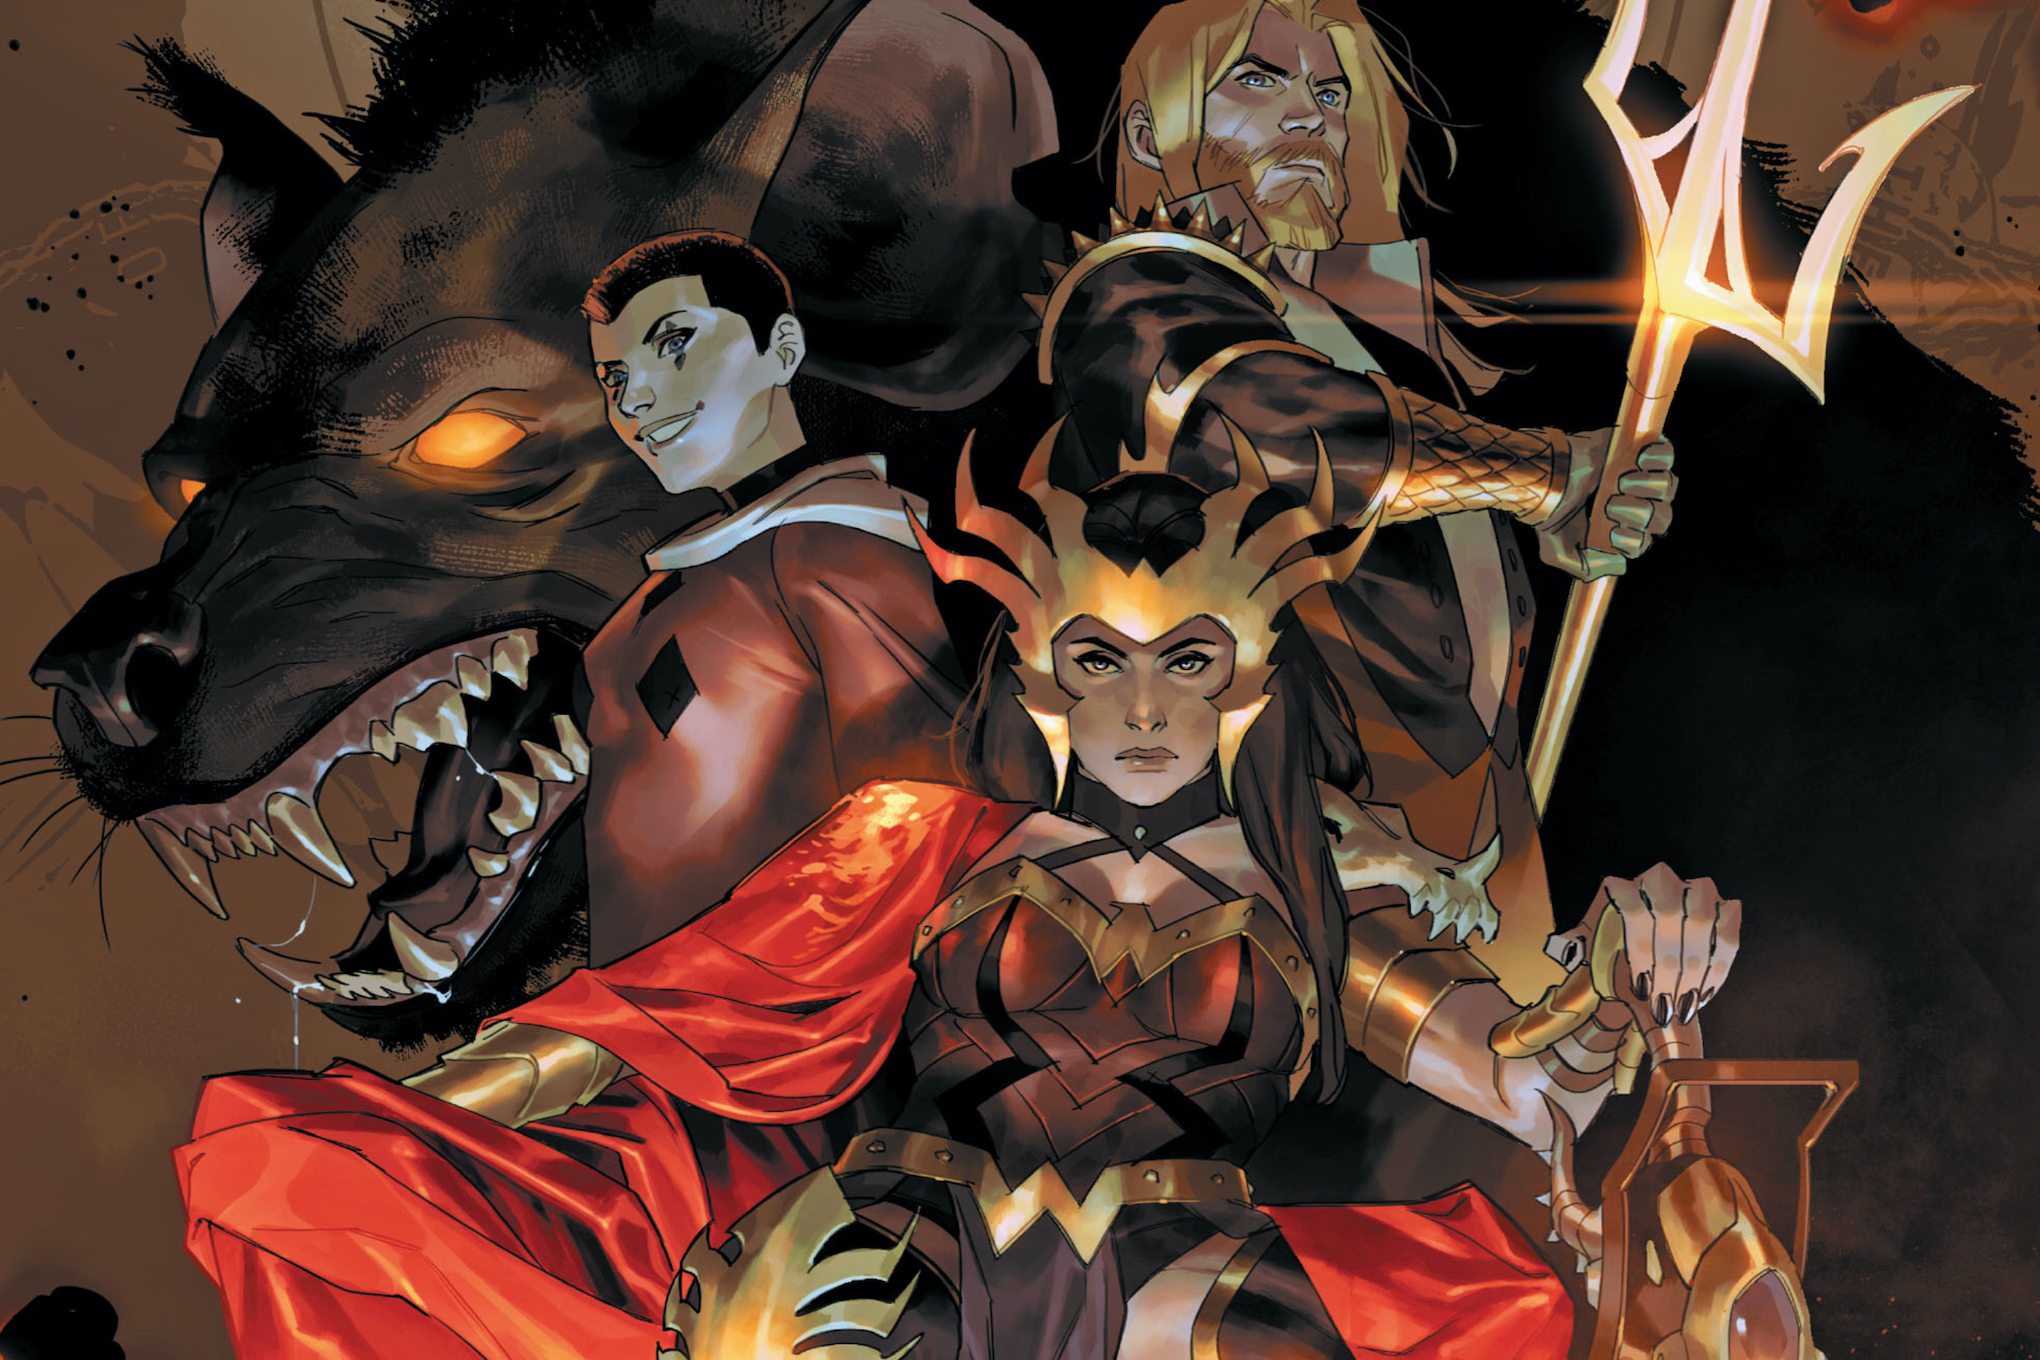 Wonder Woman sits enthroned, with Harley Quinn, Aquaman, and a massive hyena behind her, on the cover of Dark Nights: Death Metal Guidebook, DC Comics (2020).